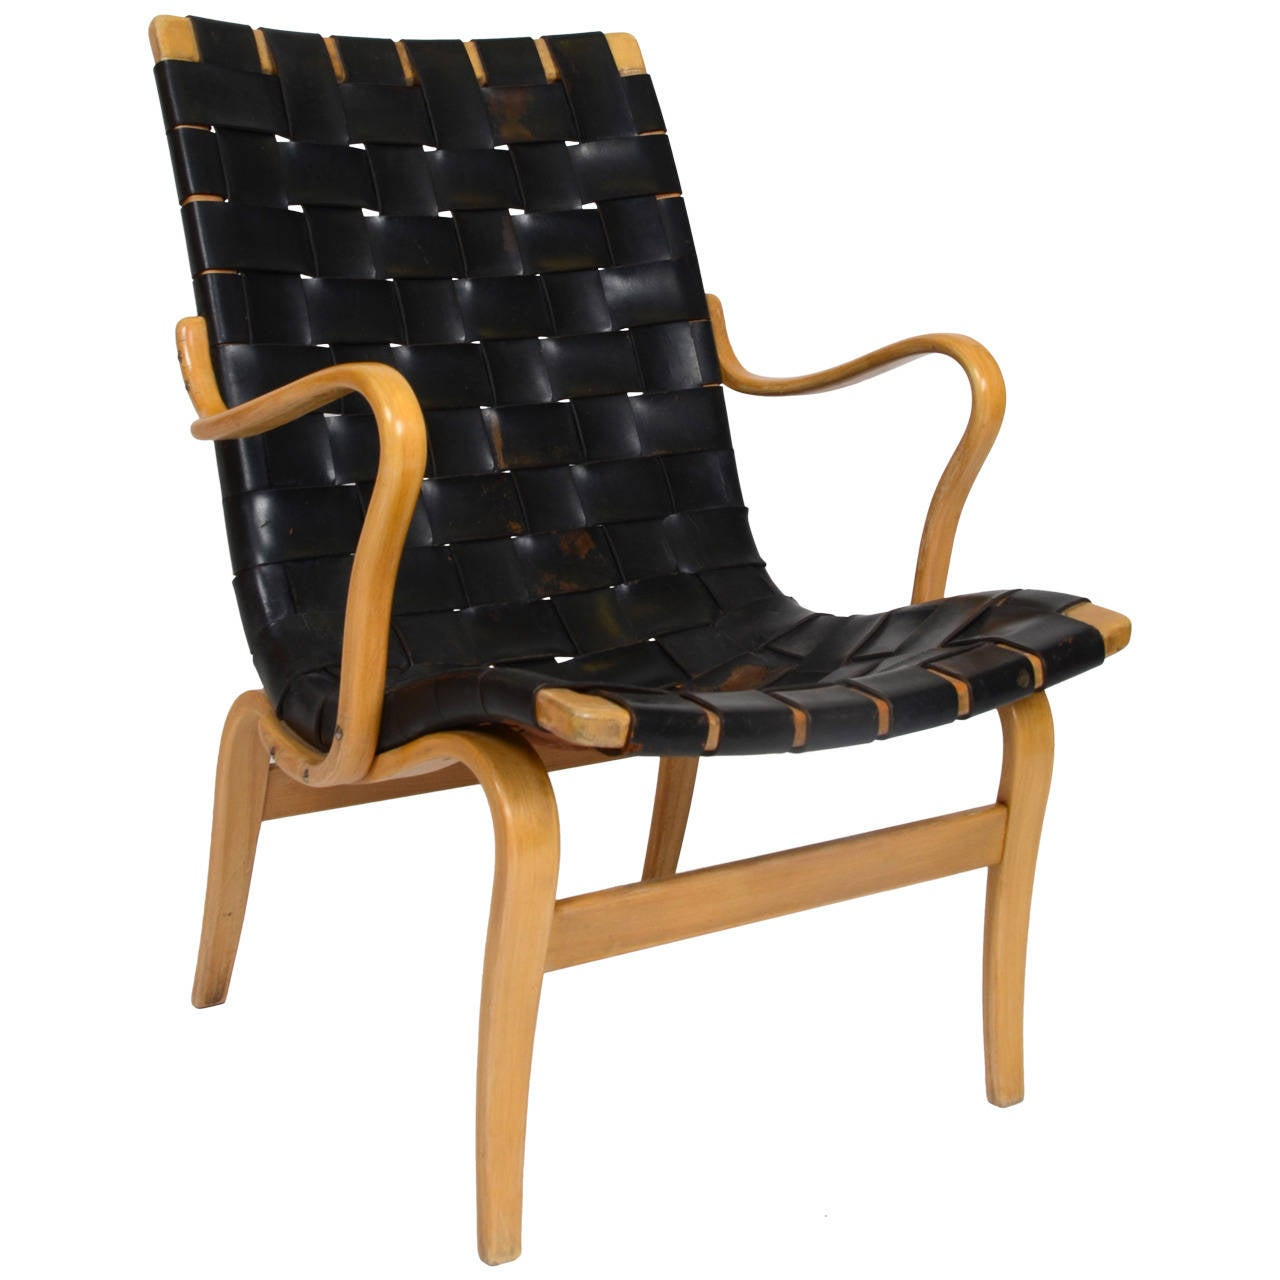 Eva Chair In Leather by Bruno Mathsson for Karl Mathsson, Sweden For Sale